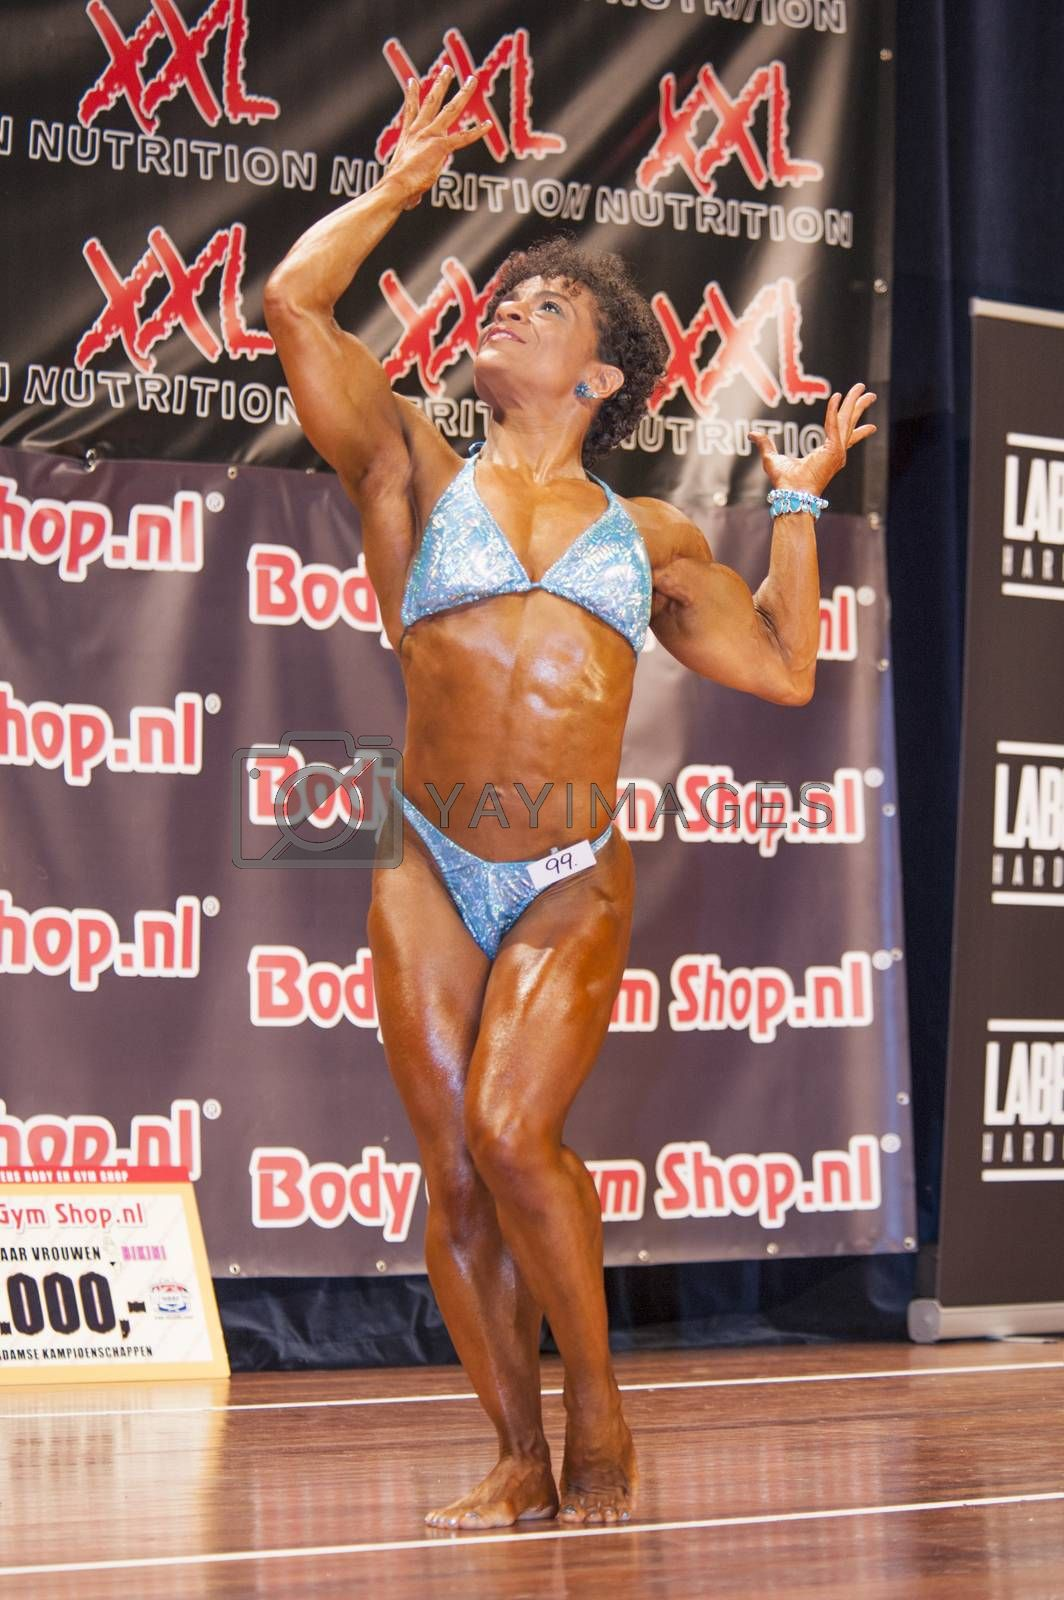 Female bodybuilder shows het muscles on stage by yellowpaul